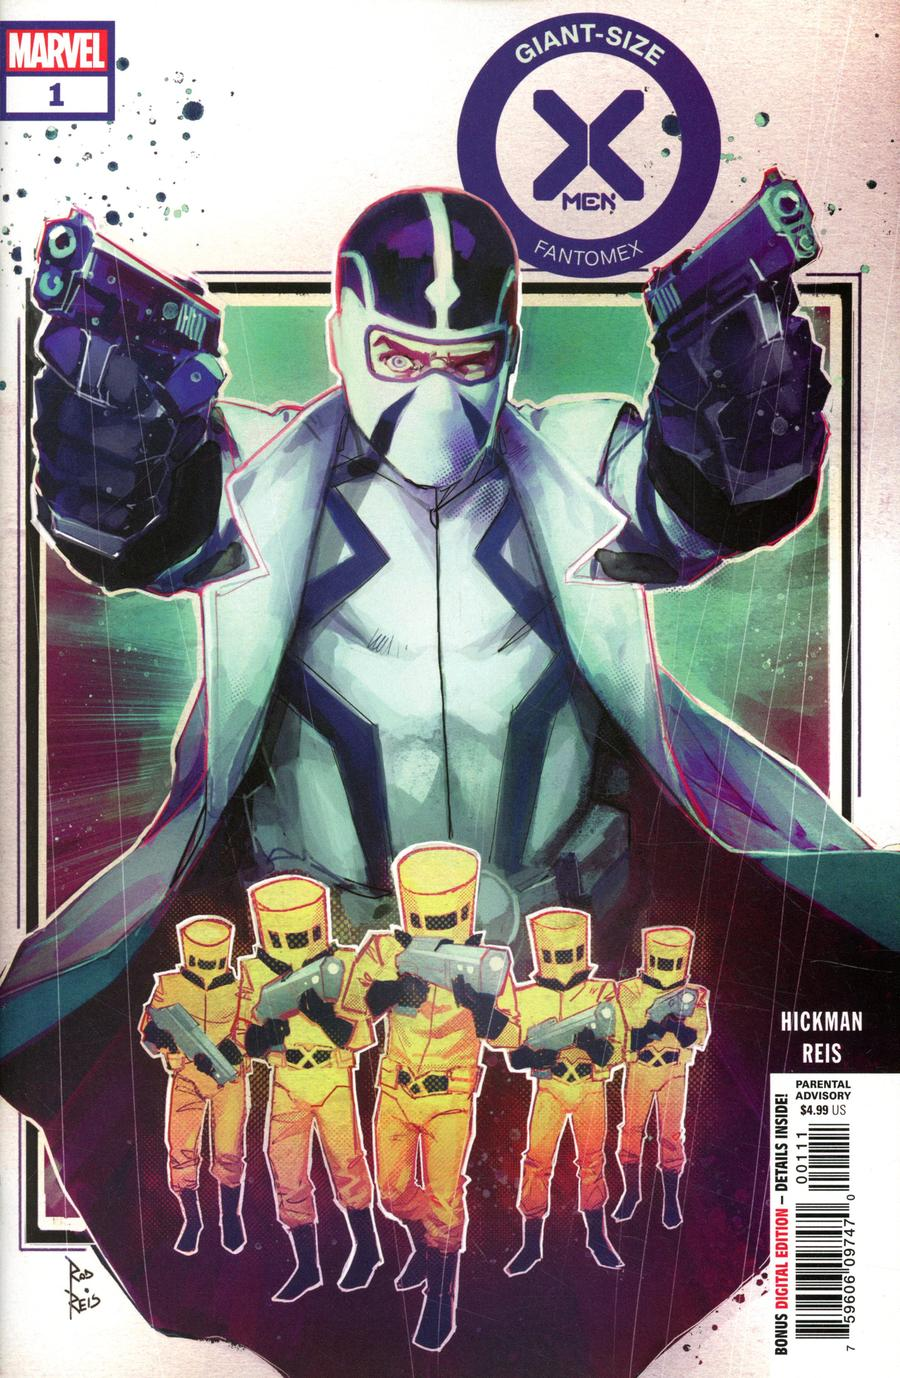 Giant-Size X-Men Fantomex #1 Cover A Regular Rod Reis Cover